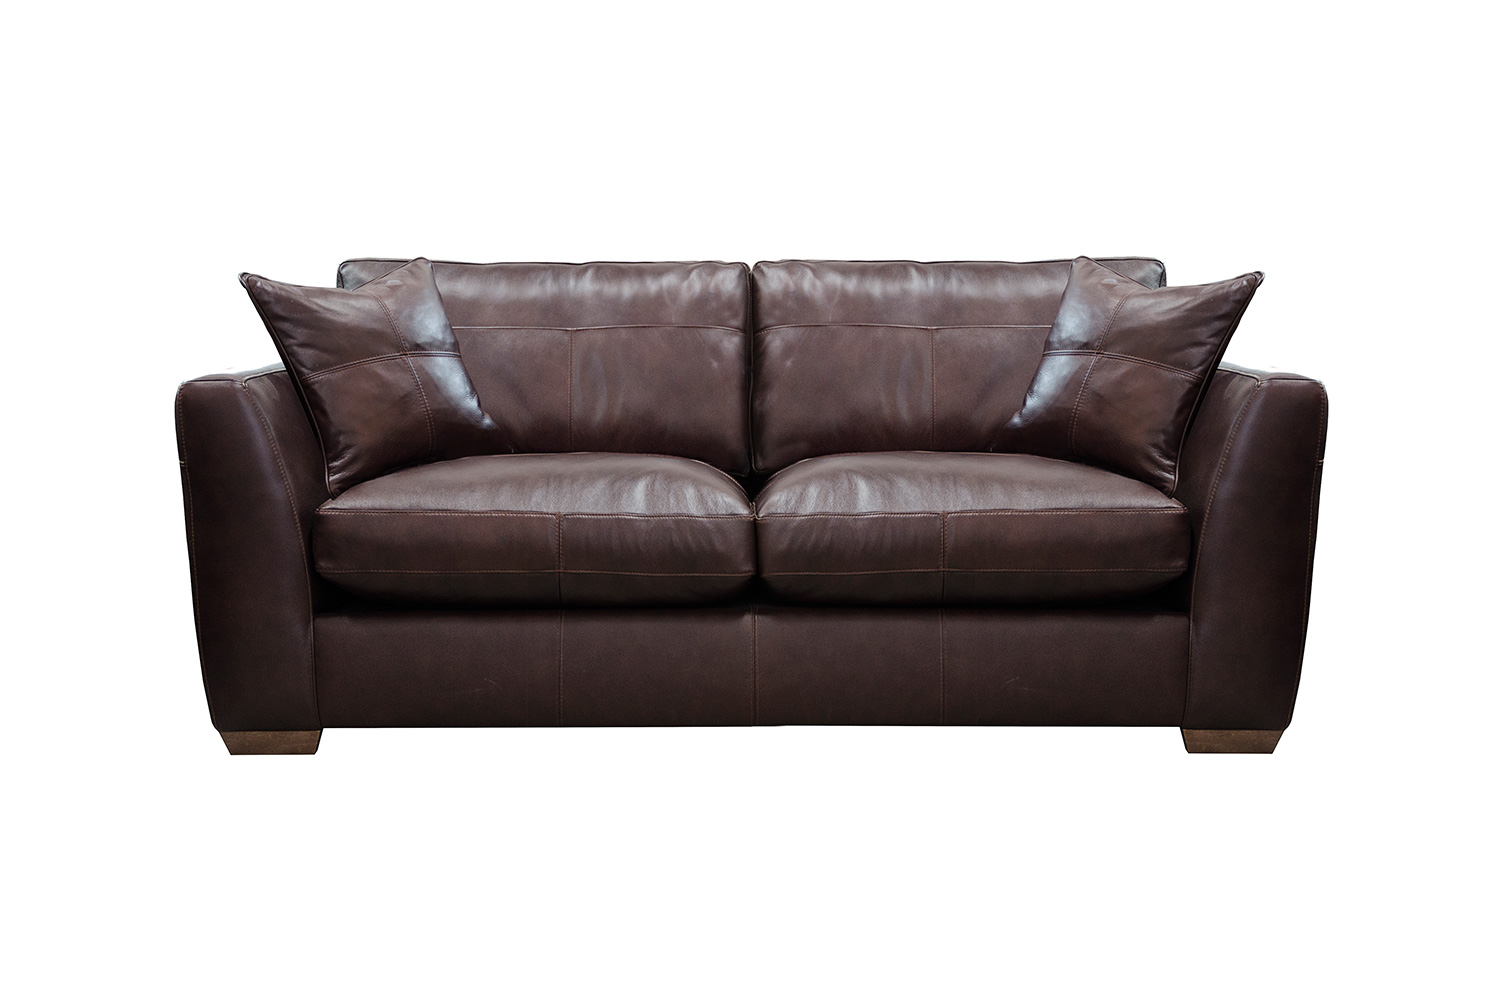 Alexander Leather Sofa Images